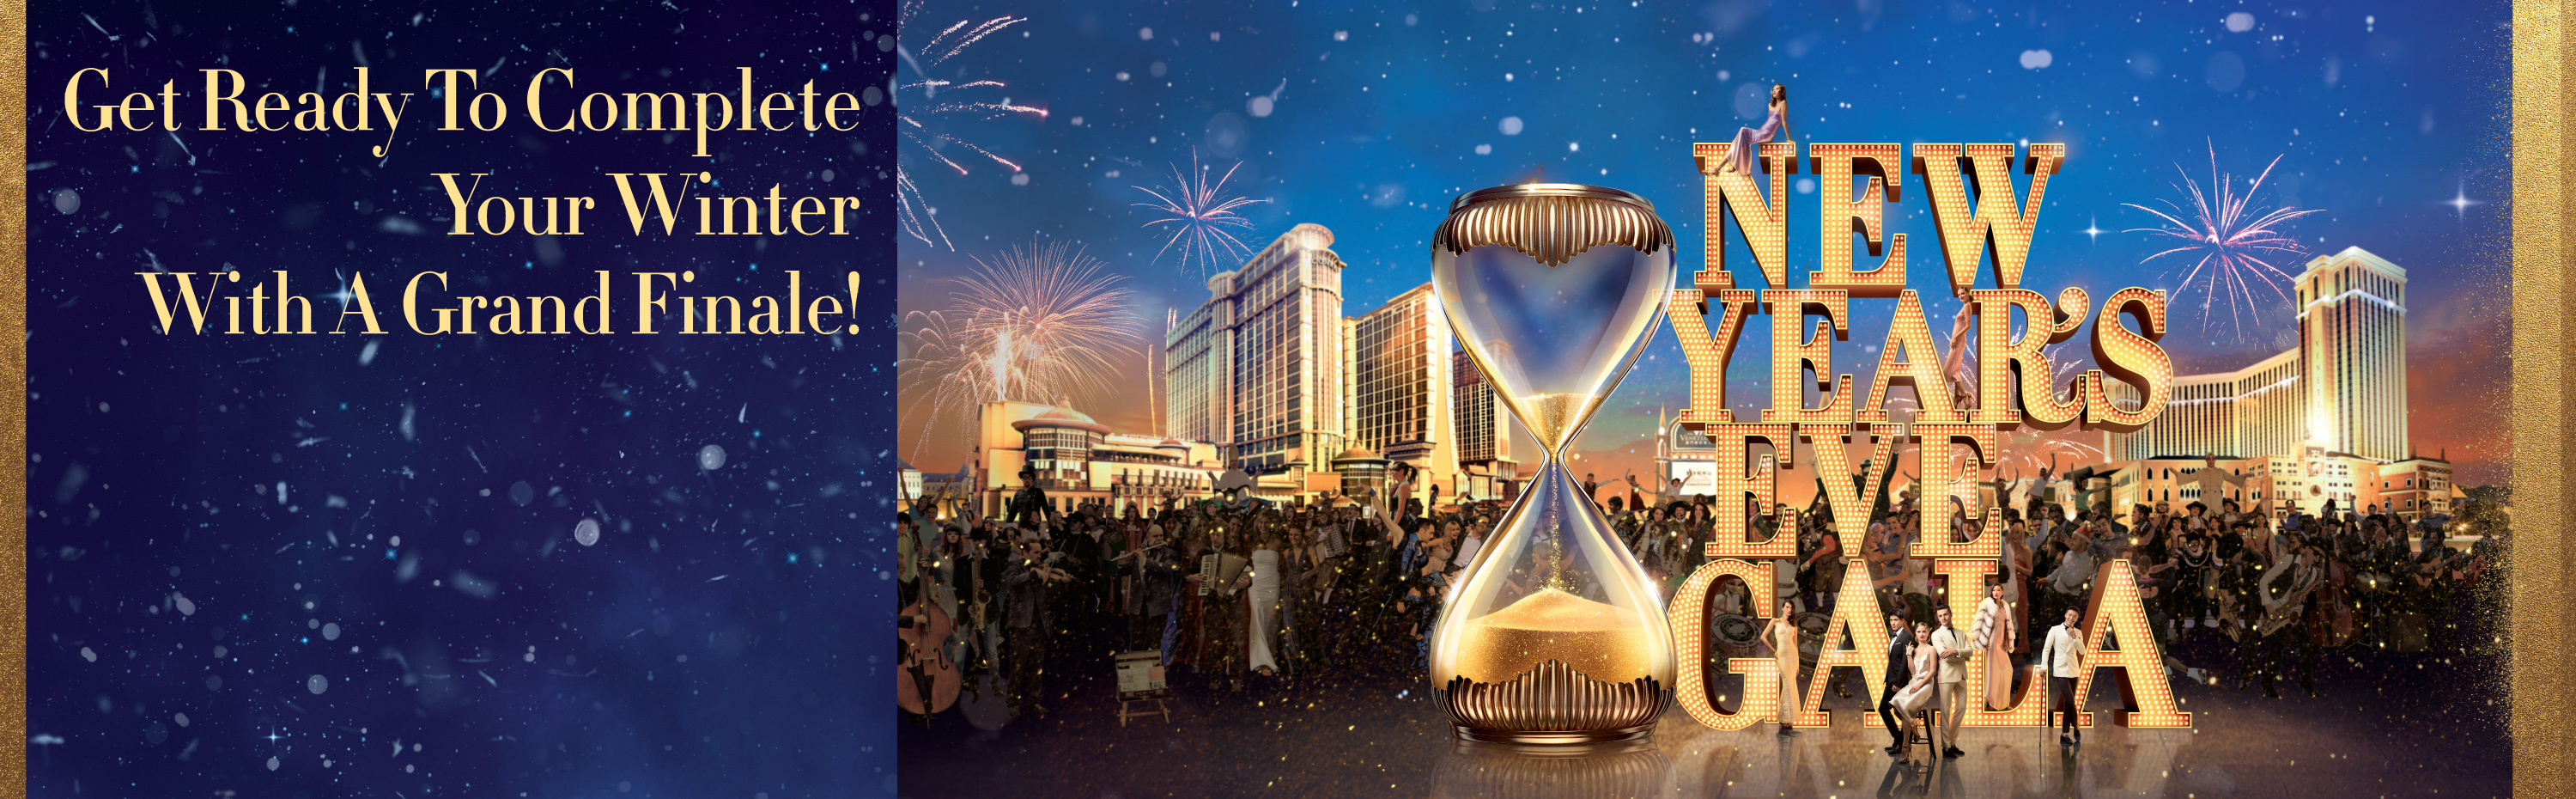 new years eve gala venetian macao